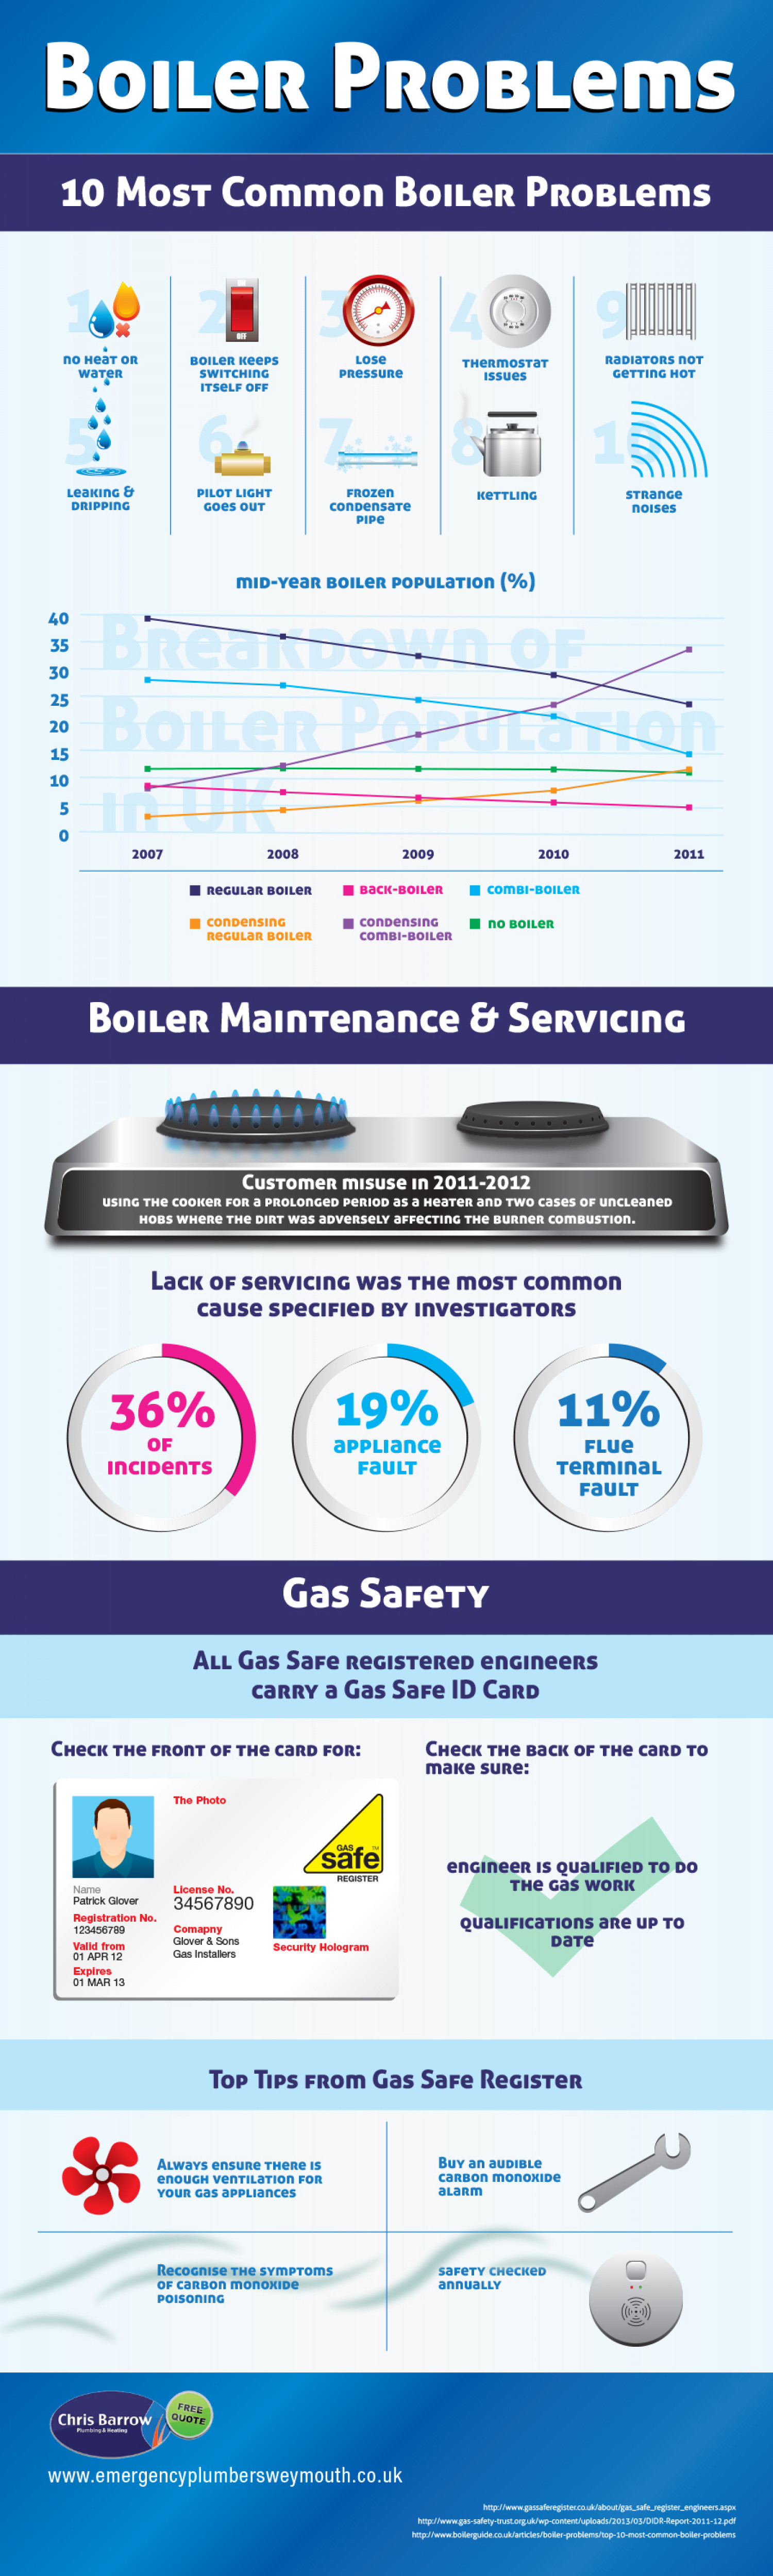 Boiler Problems: 10 Most Common Boiler Problems Infographic